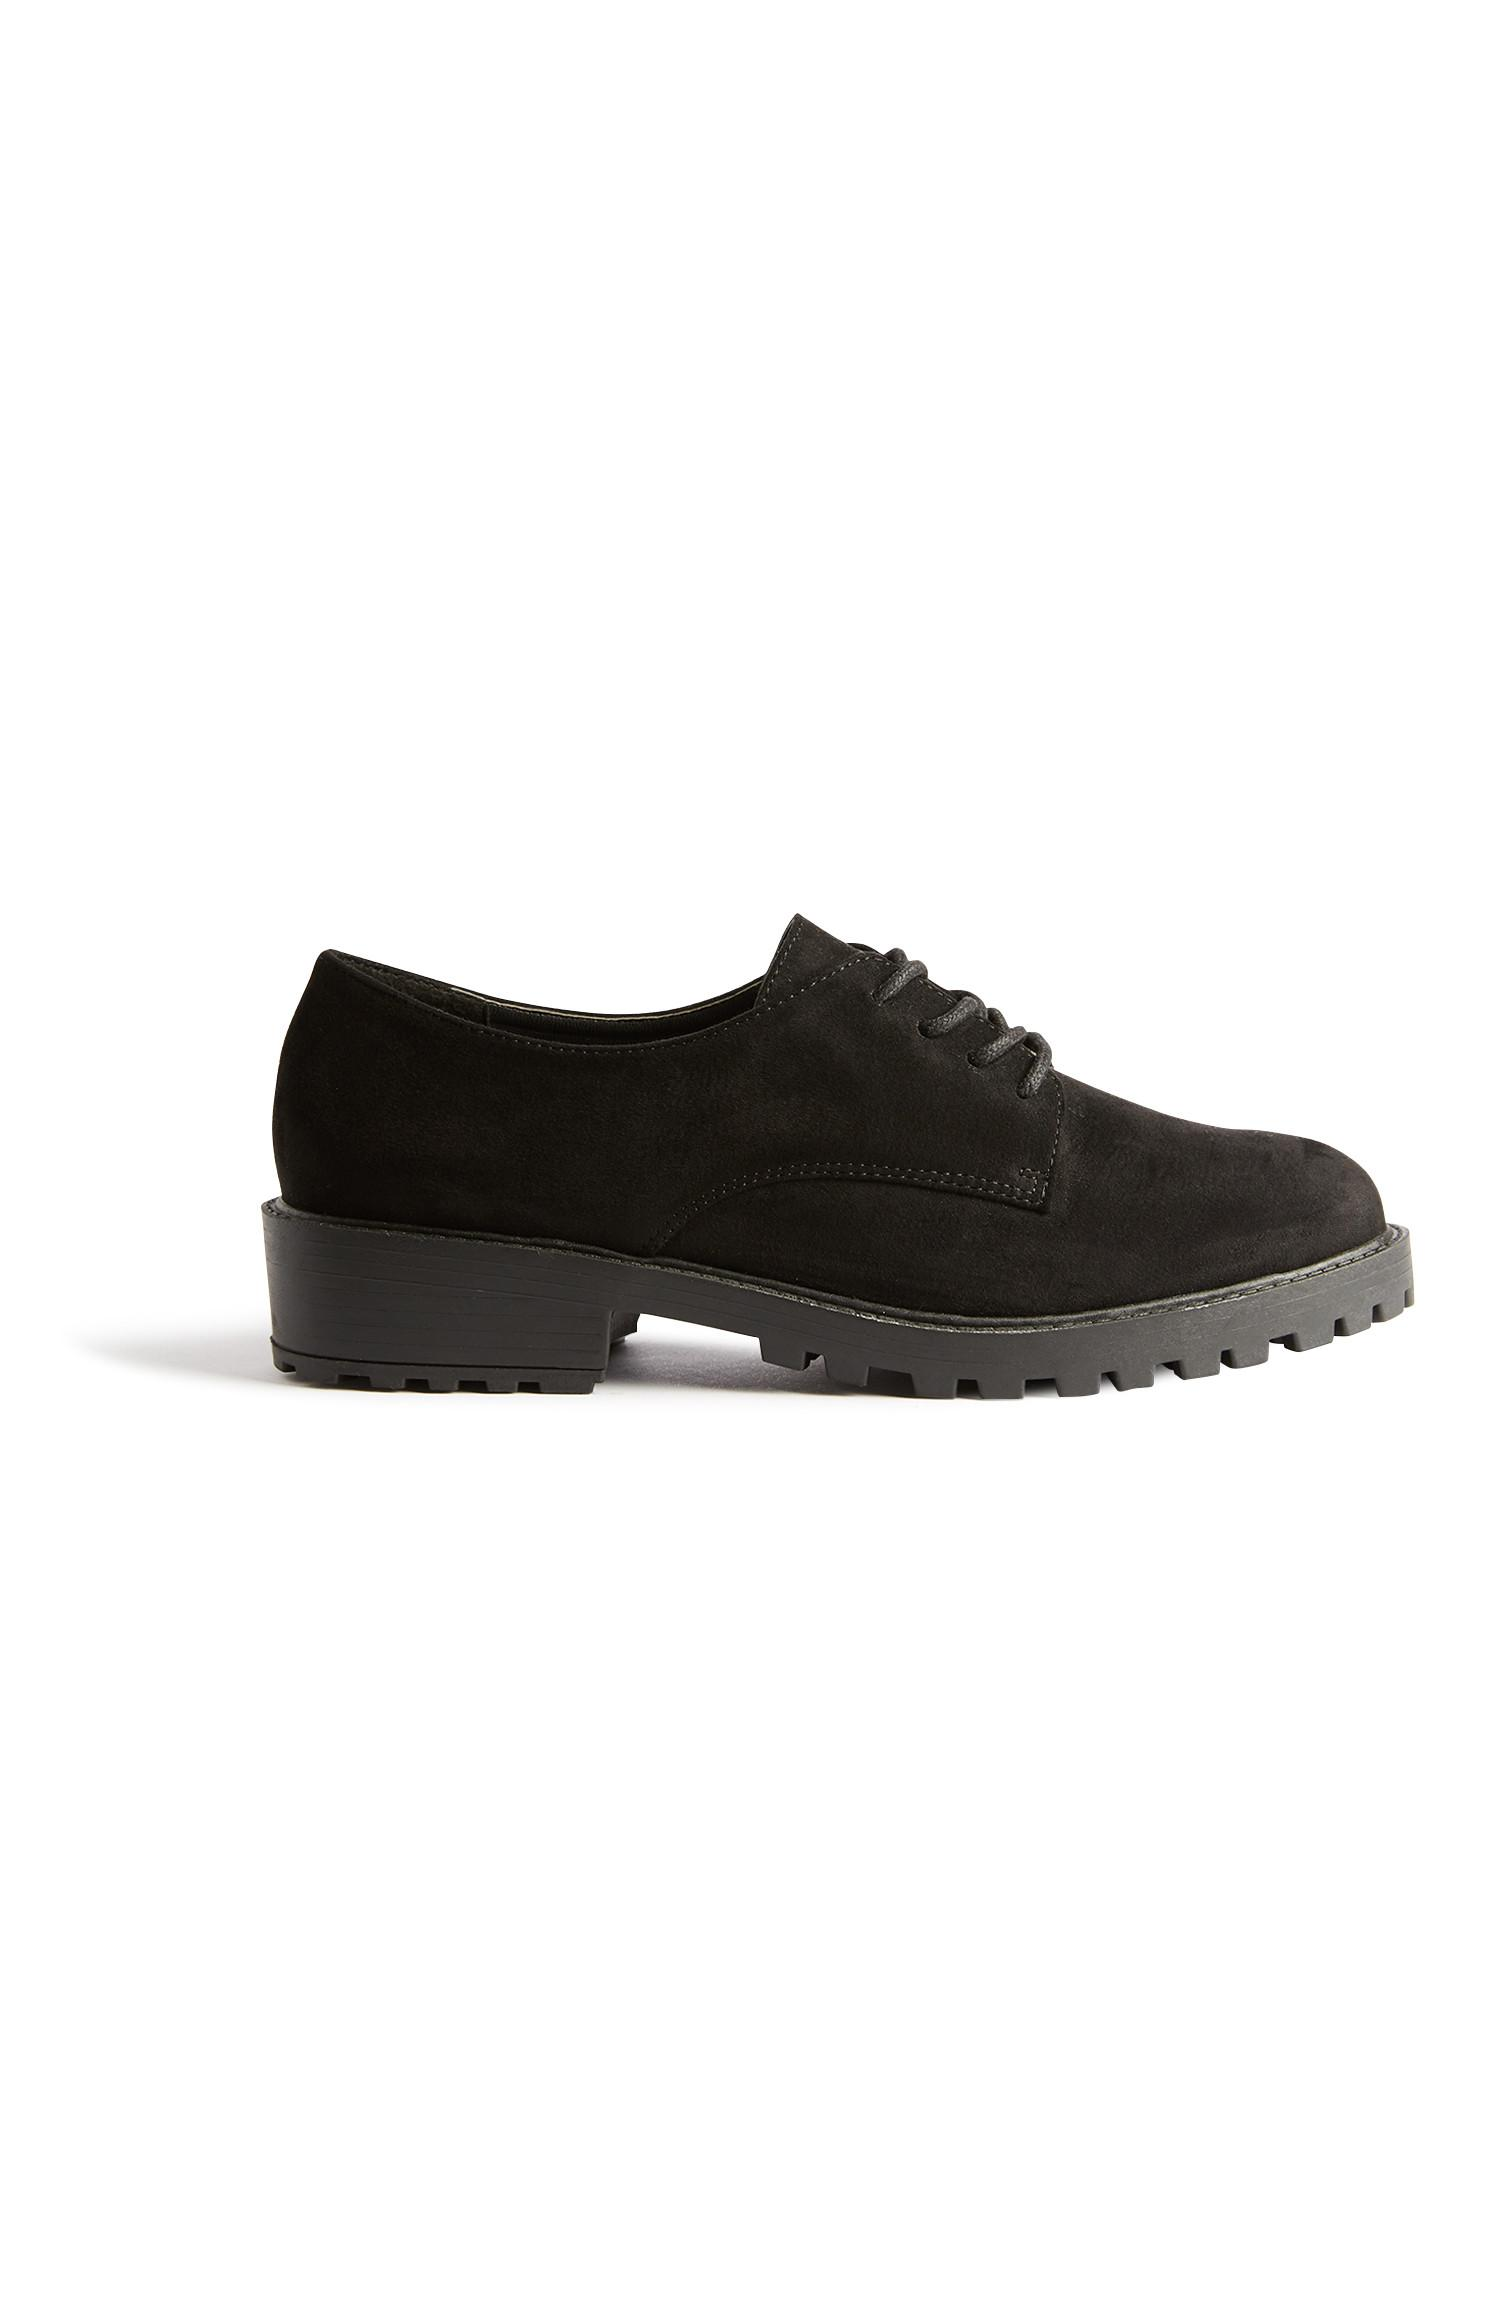 Black Cleated Shoe